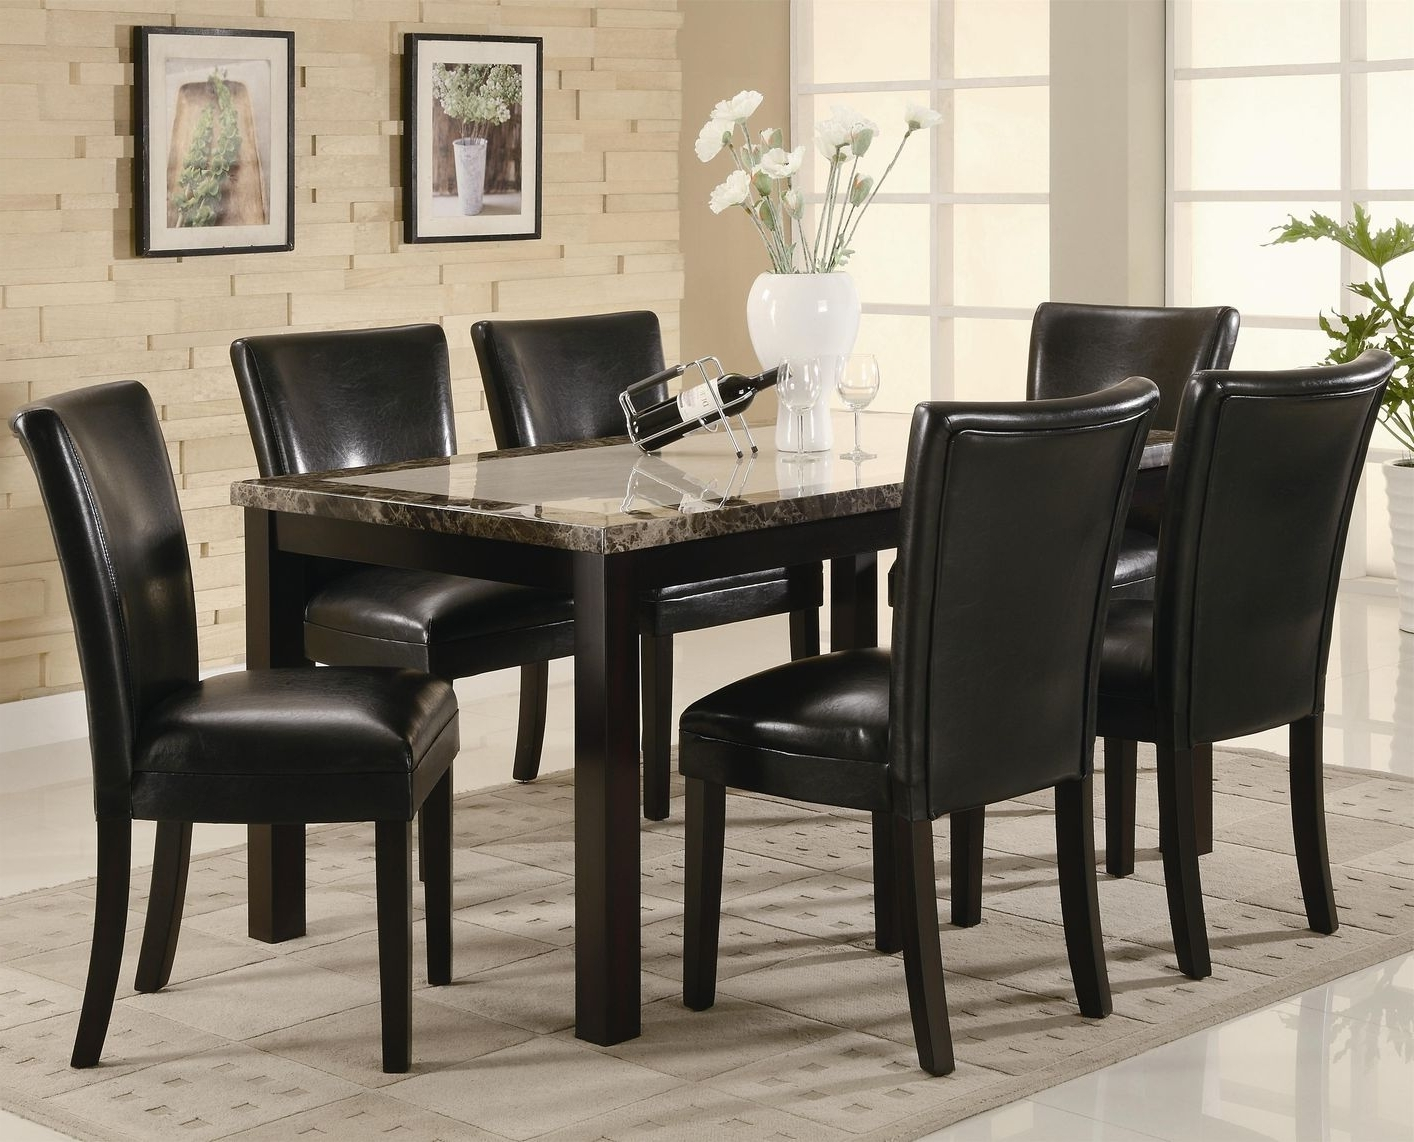 19 Dark Wood Dining Table Set, Furniture: Rustic Wooden Dining Room With Most Recent Dark Solid Wood Dining Tables (View 5 of 25)